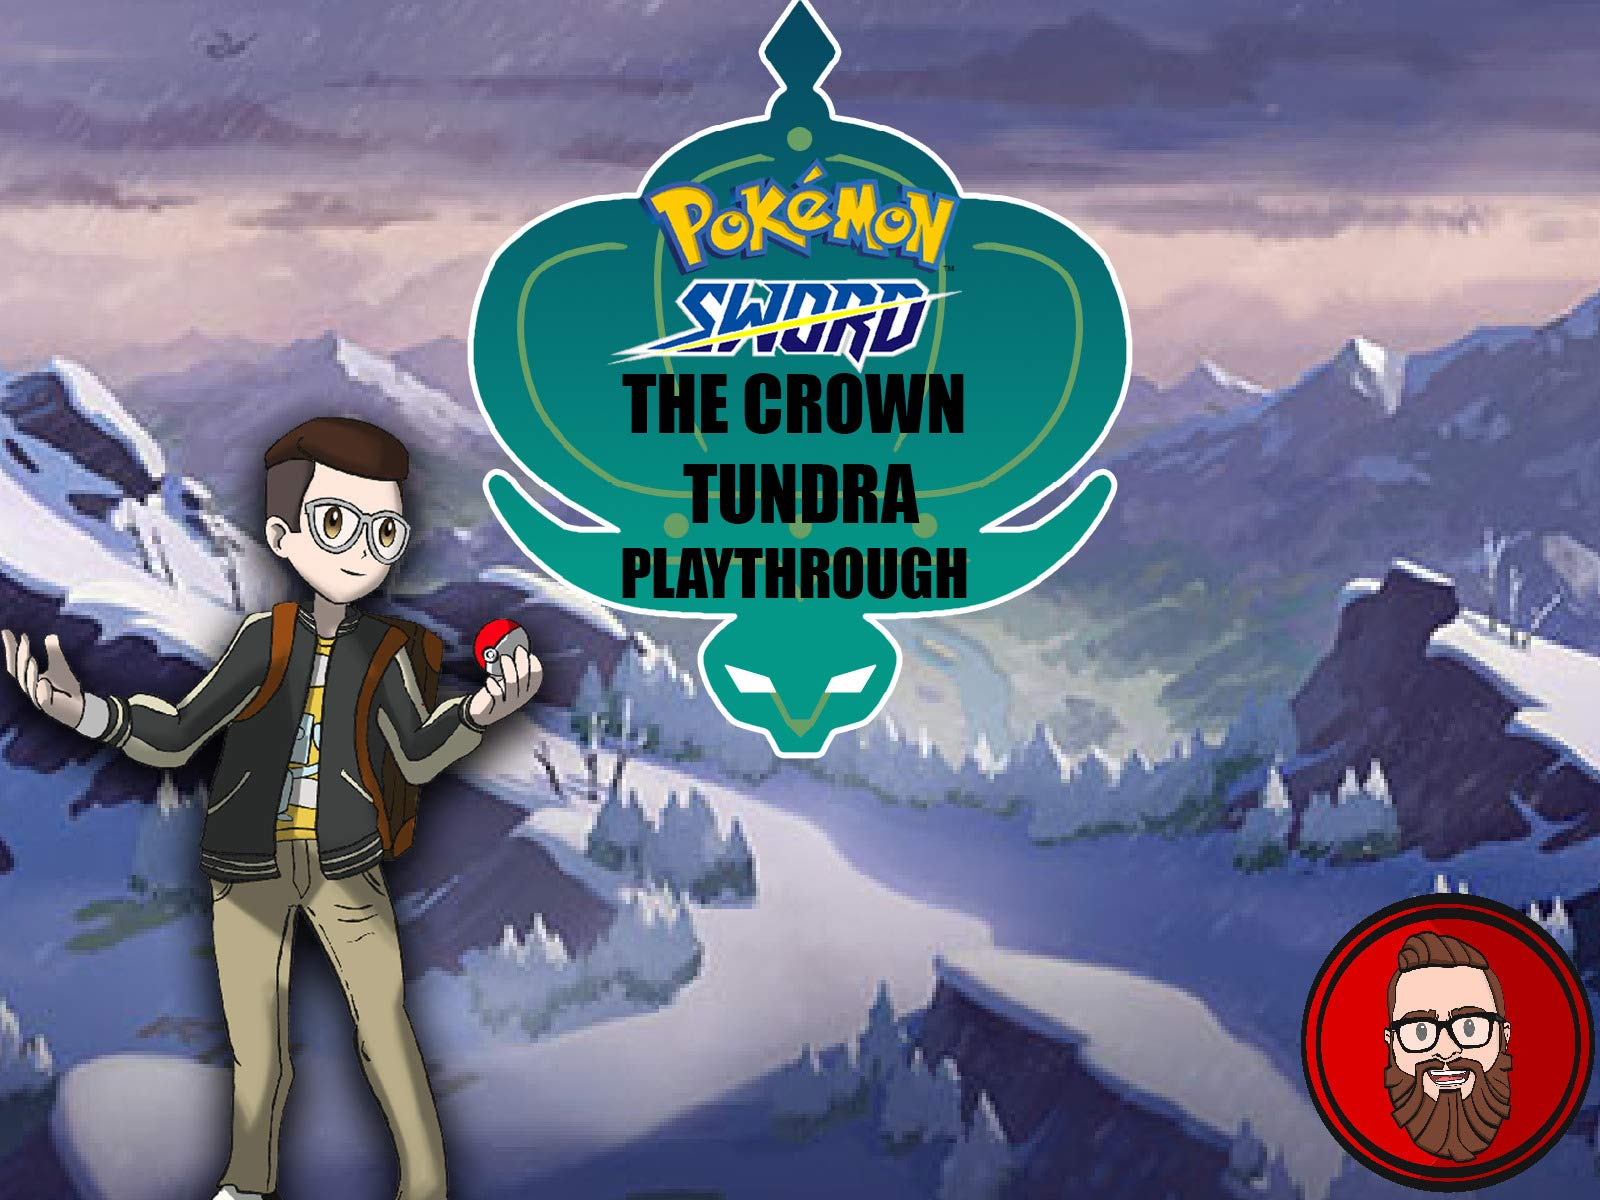 Clip: Pokemon Sword The Crown Tundra Playthrough - Season 1